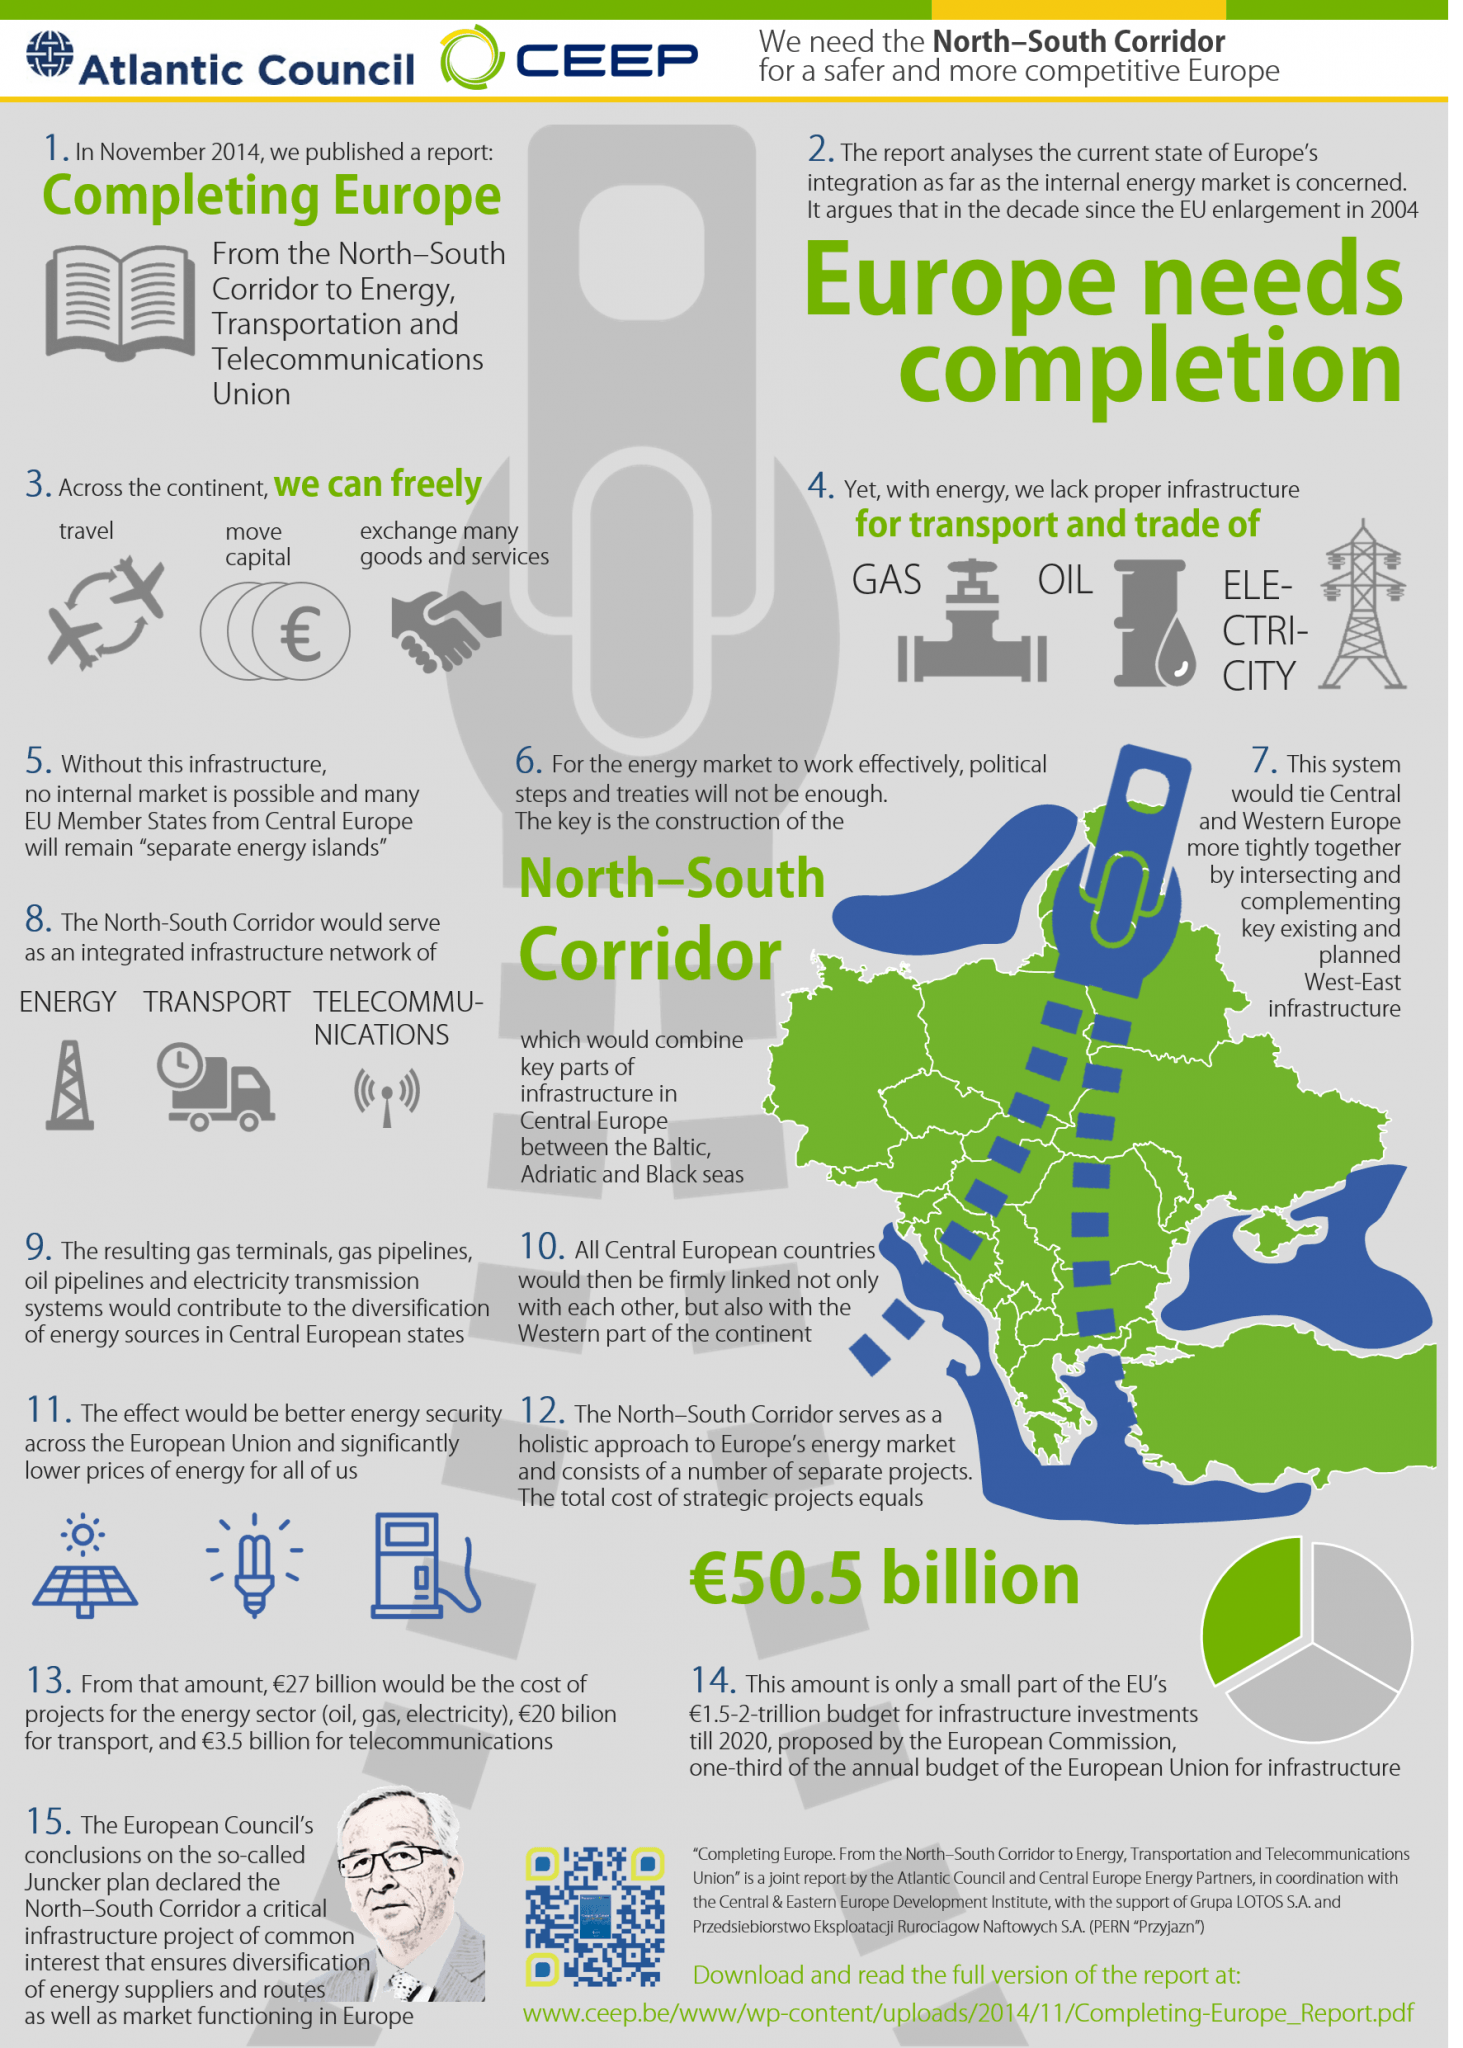 Completing Europe - From the North-South Corridor to Energy...Full Report